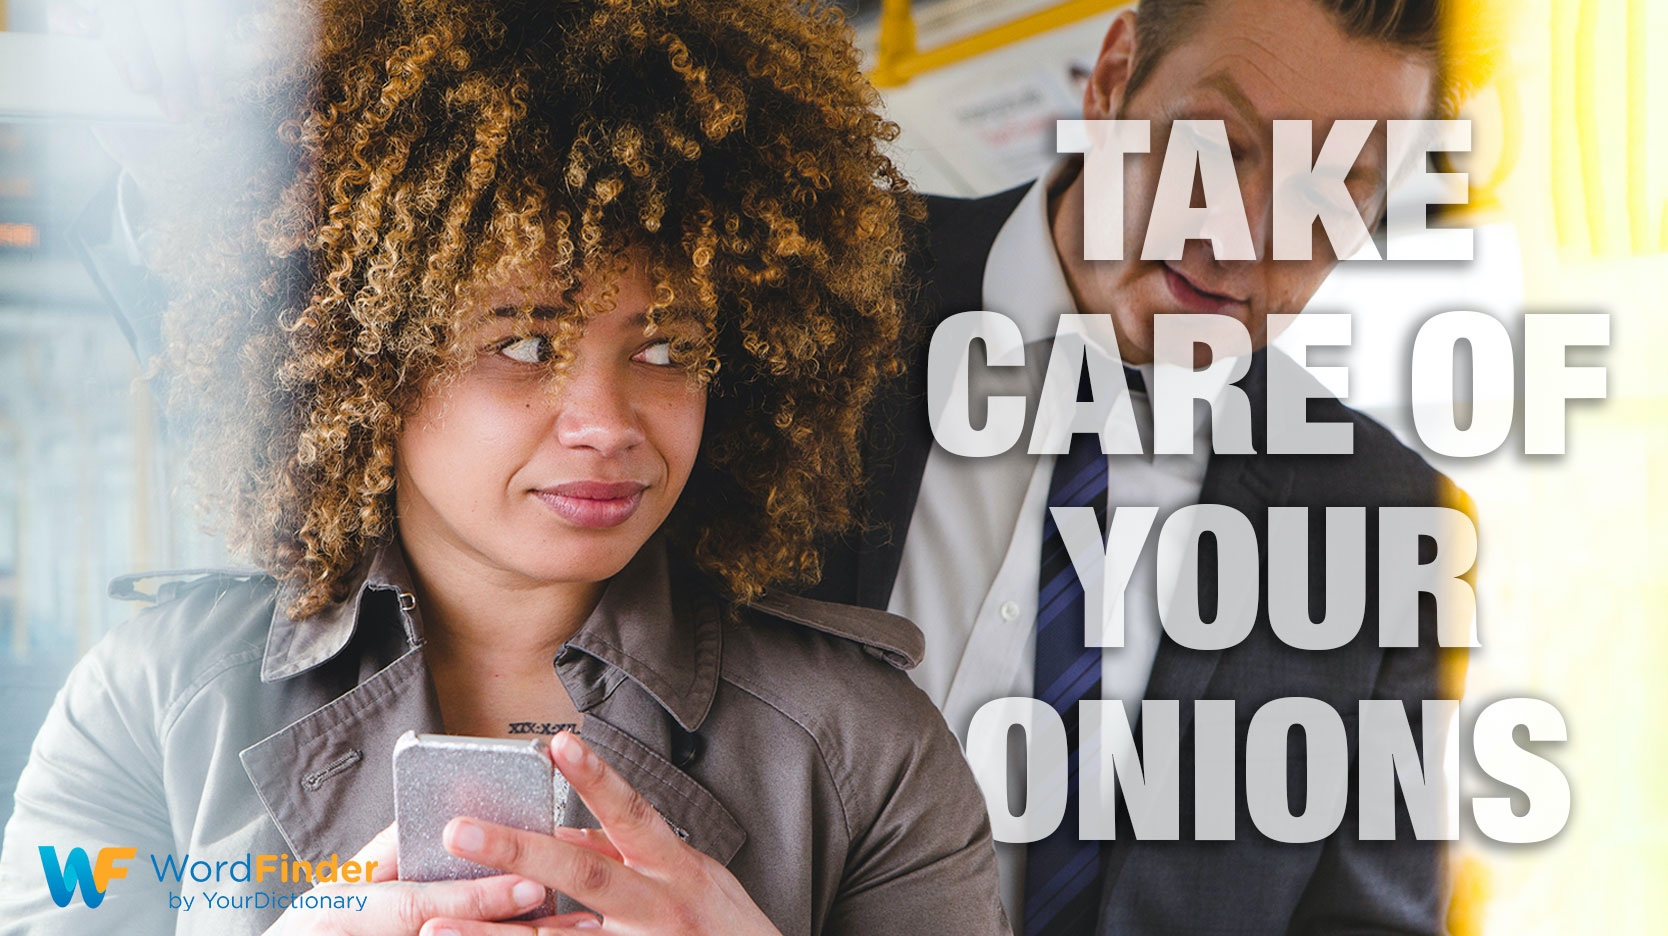 French take care of your onions man reading woman's text